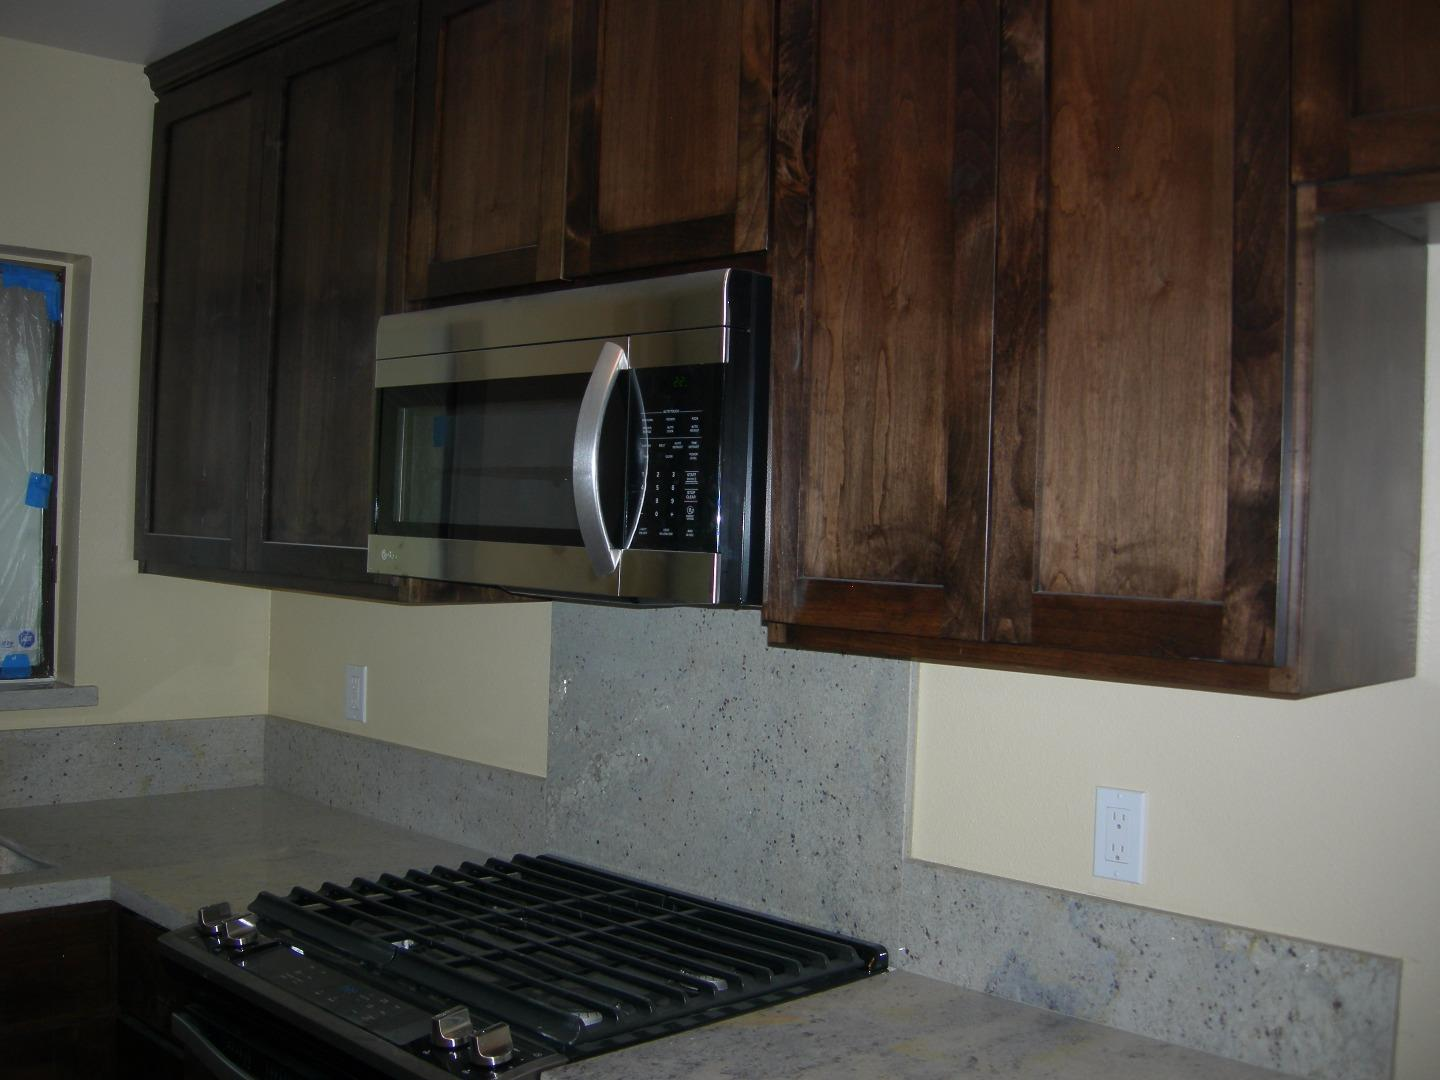 Additional photo for property listing at 530 Felix Way  San Jose, カリフォルニア 95125 アメリカ合衆国